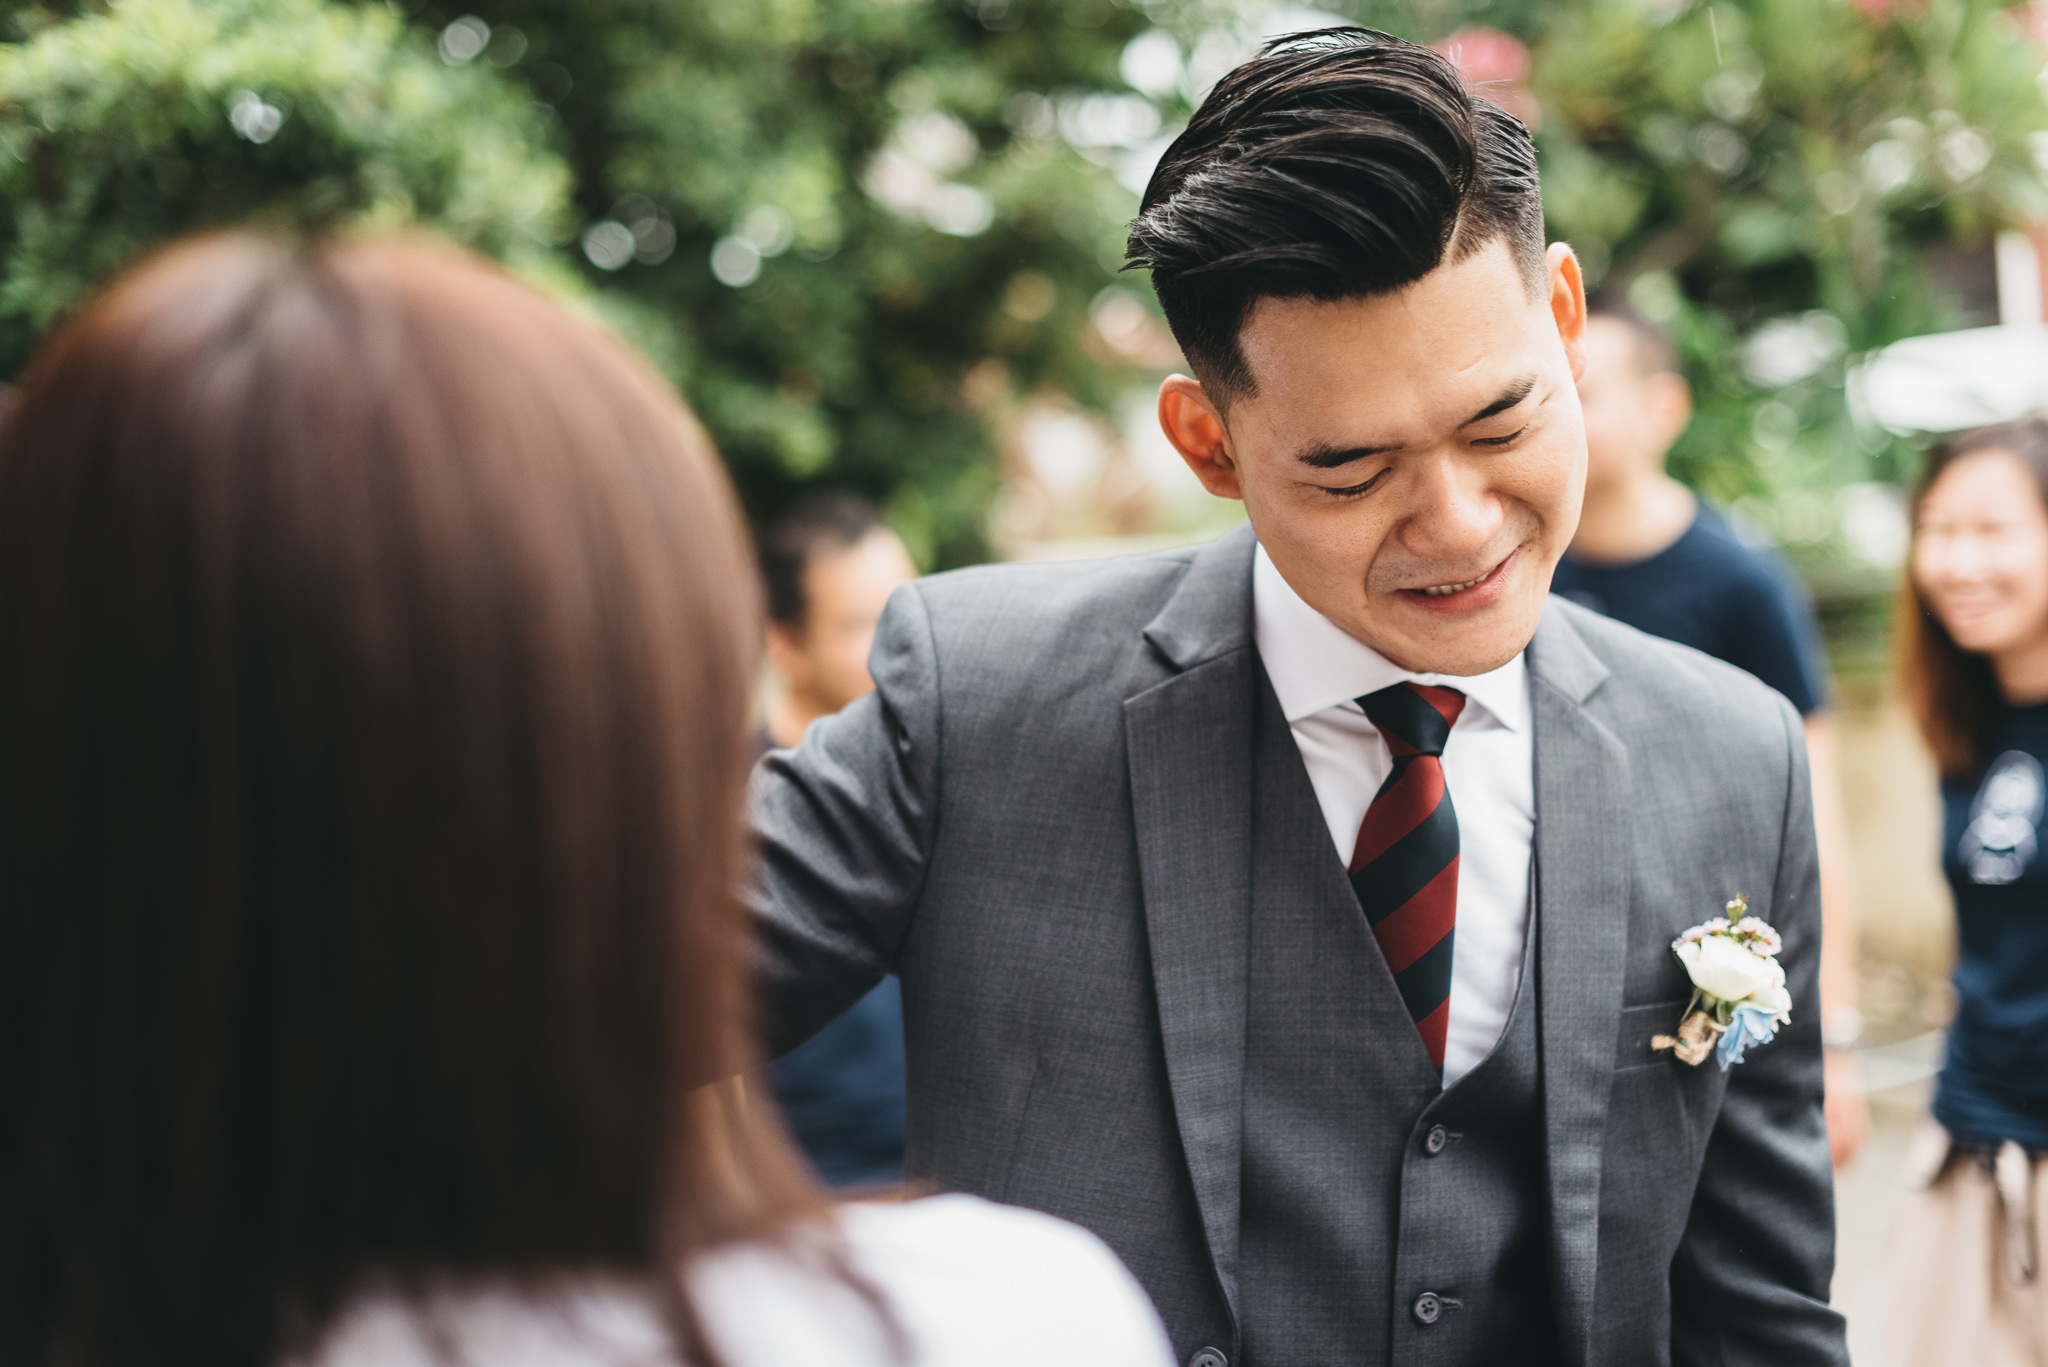 Alice & Wei Bang Wedding Day Highlights (resized for sharing) - 026.jpg